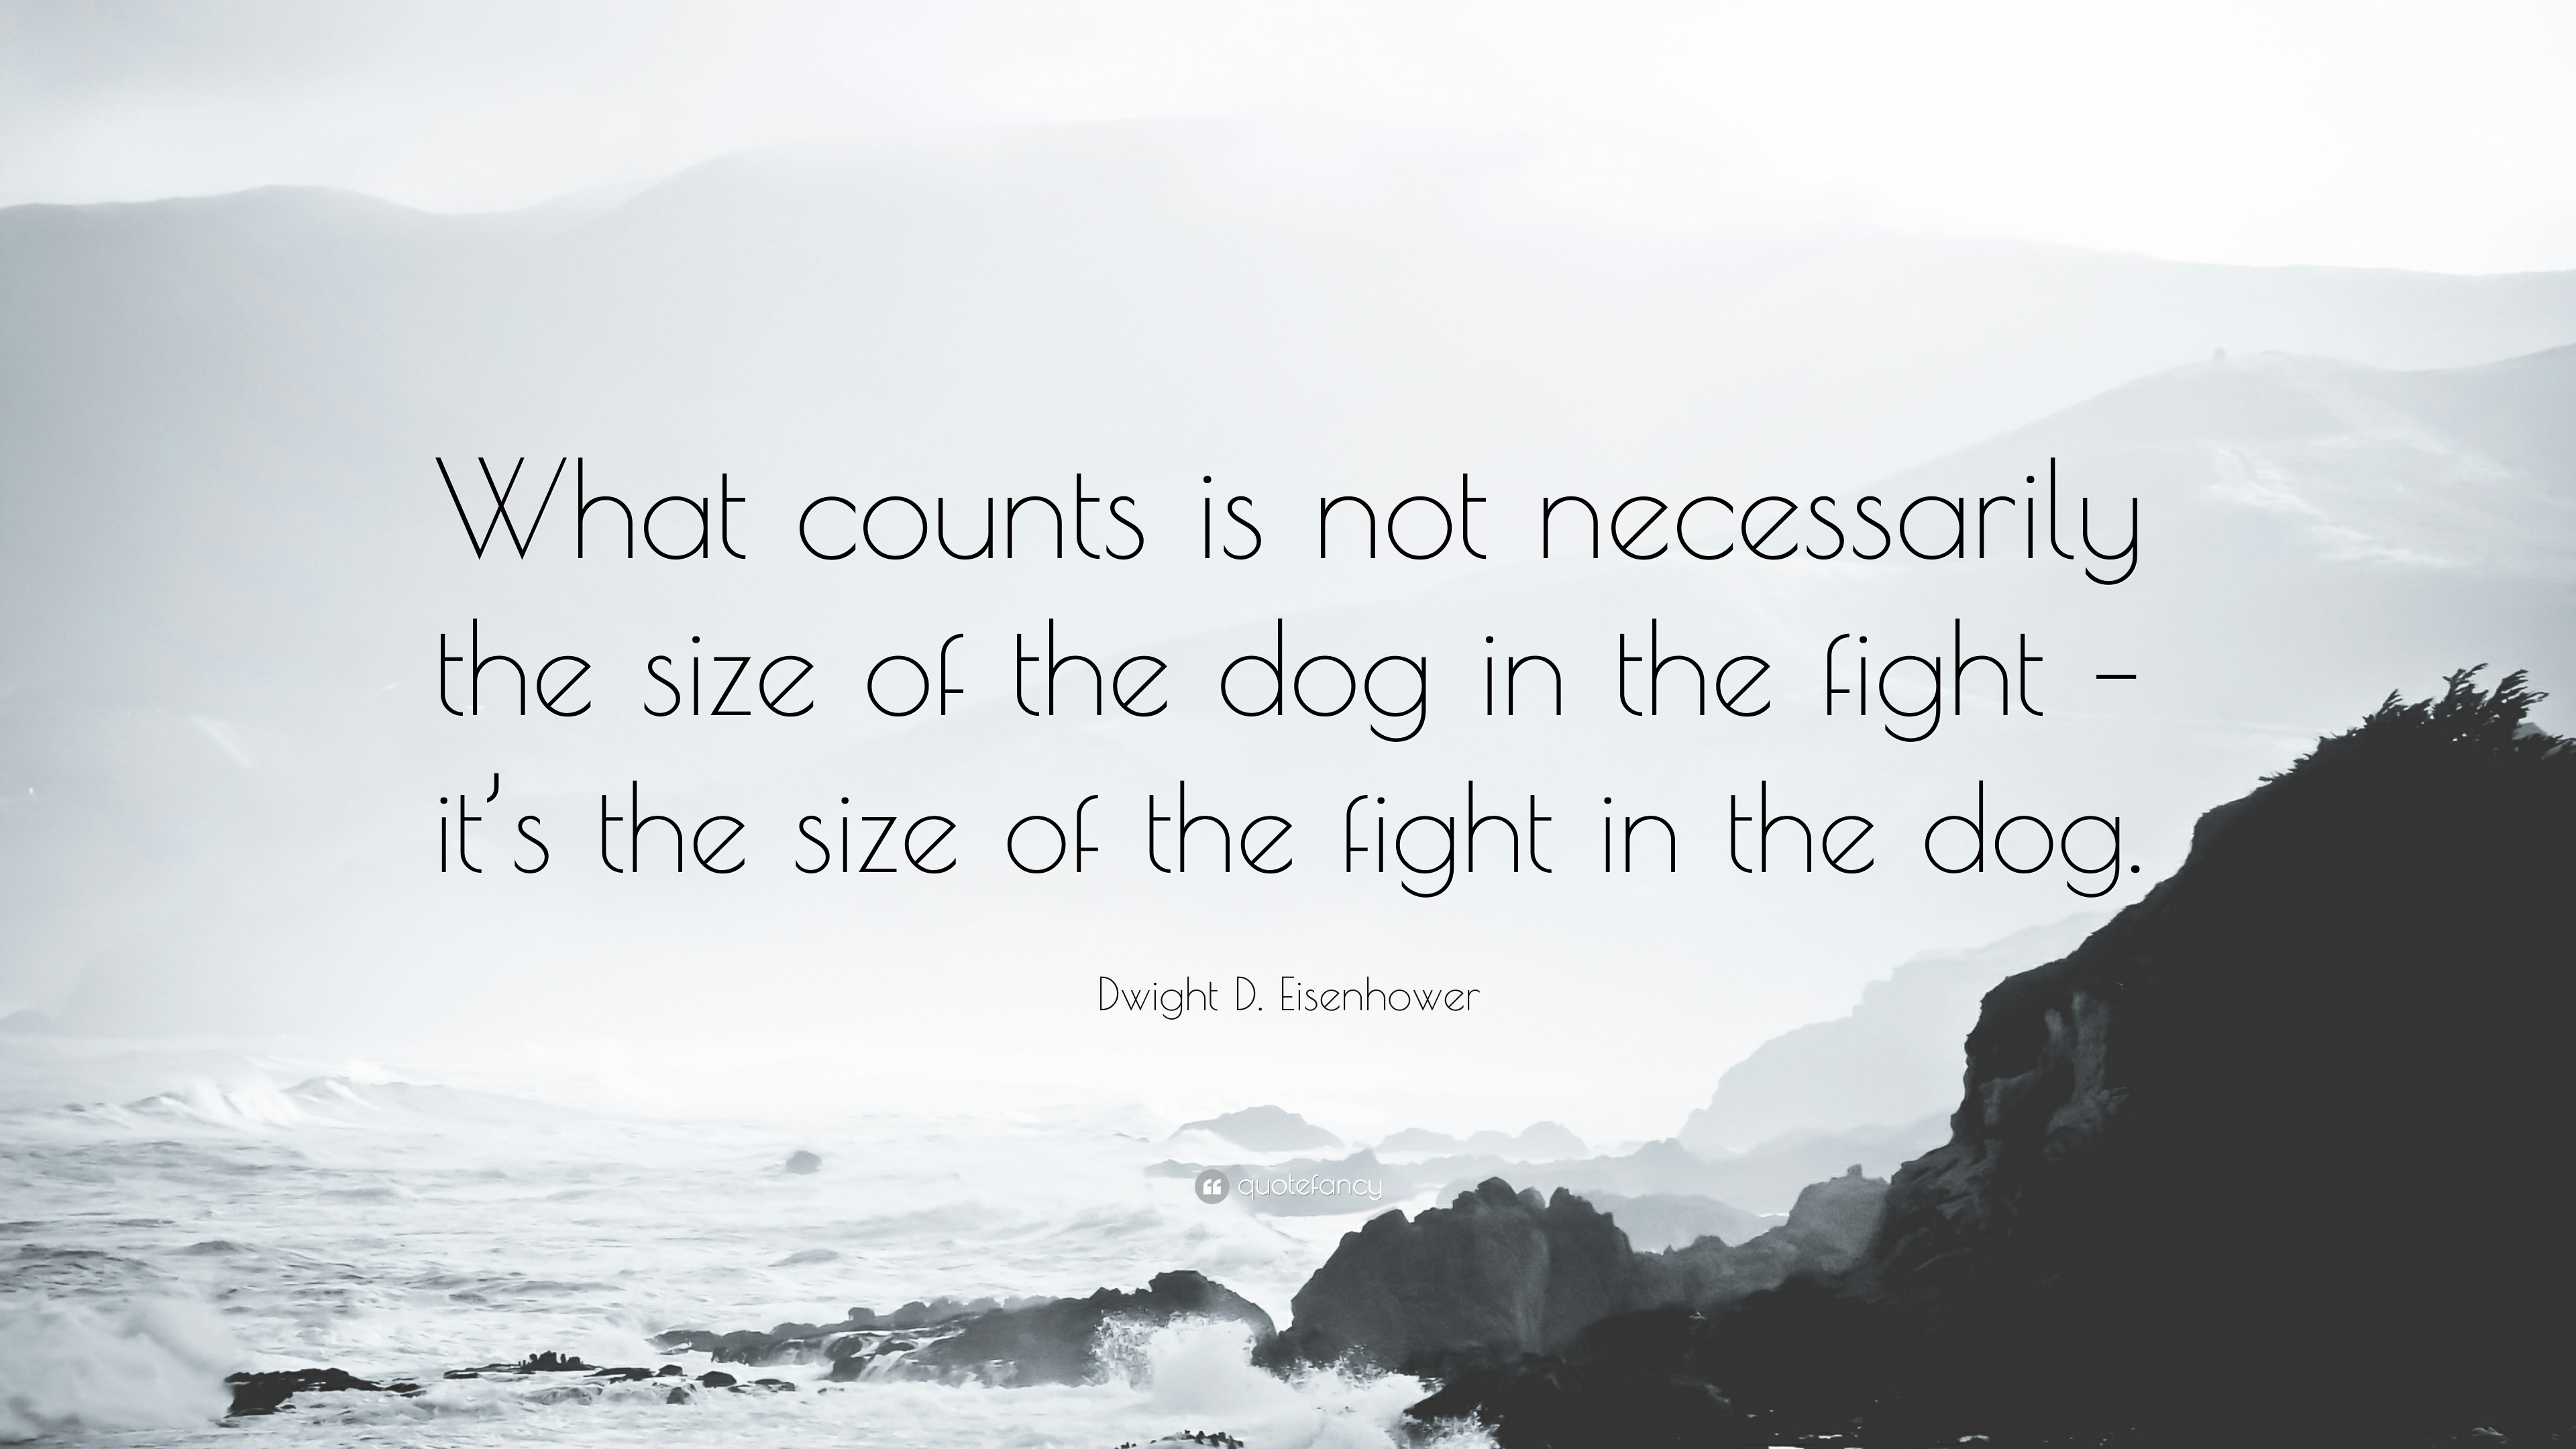 Dwight D Eisenhower Quote What Counts Is Not Necessarily The Size